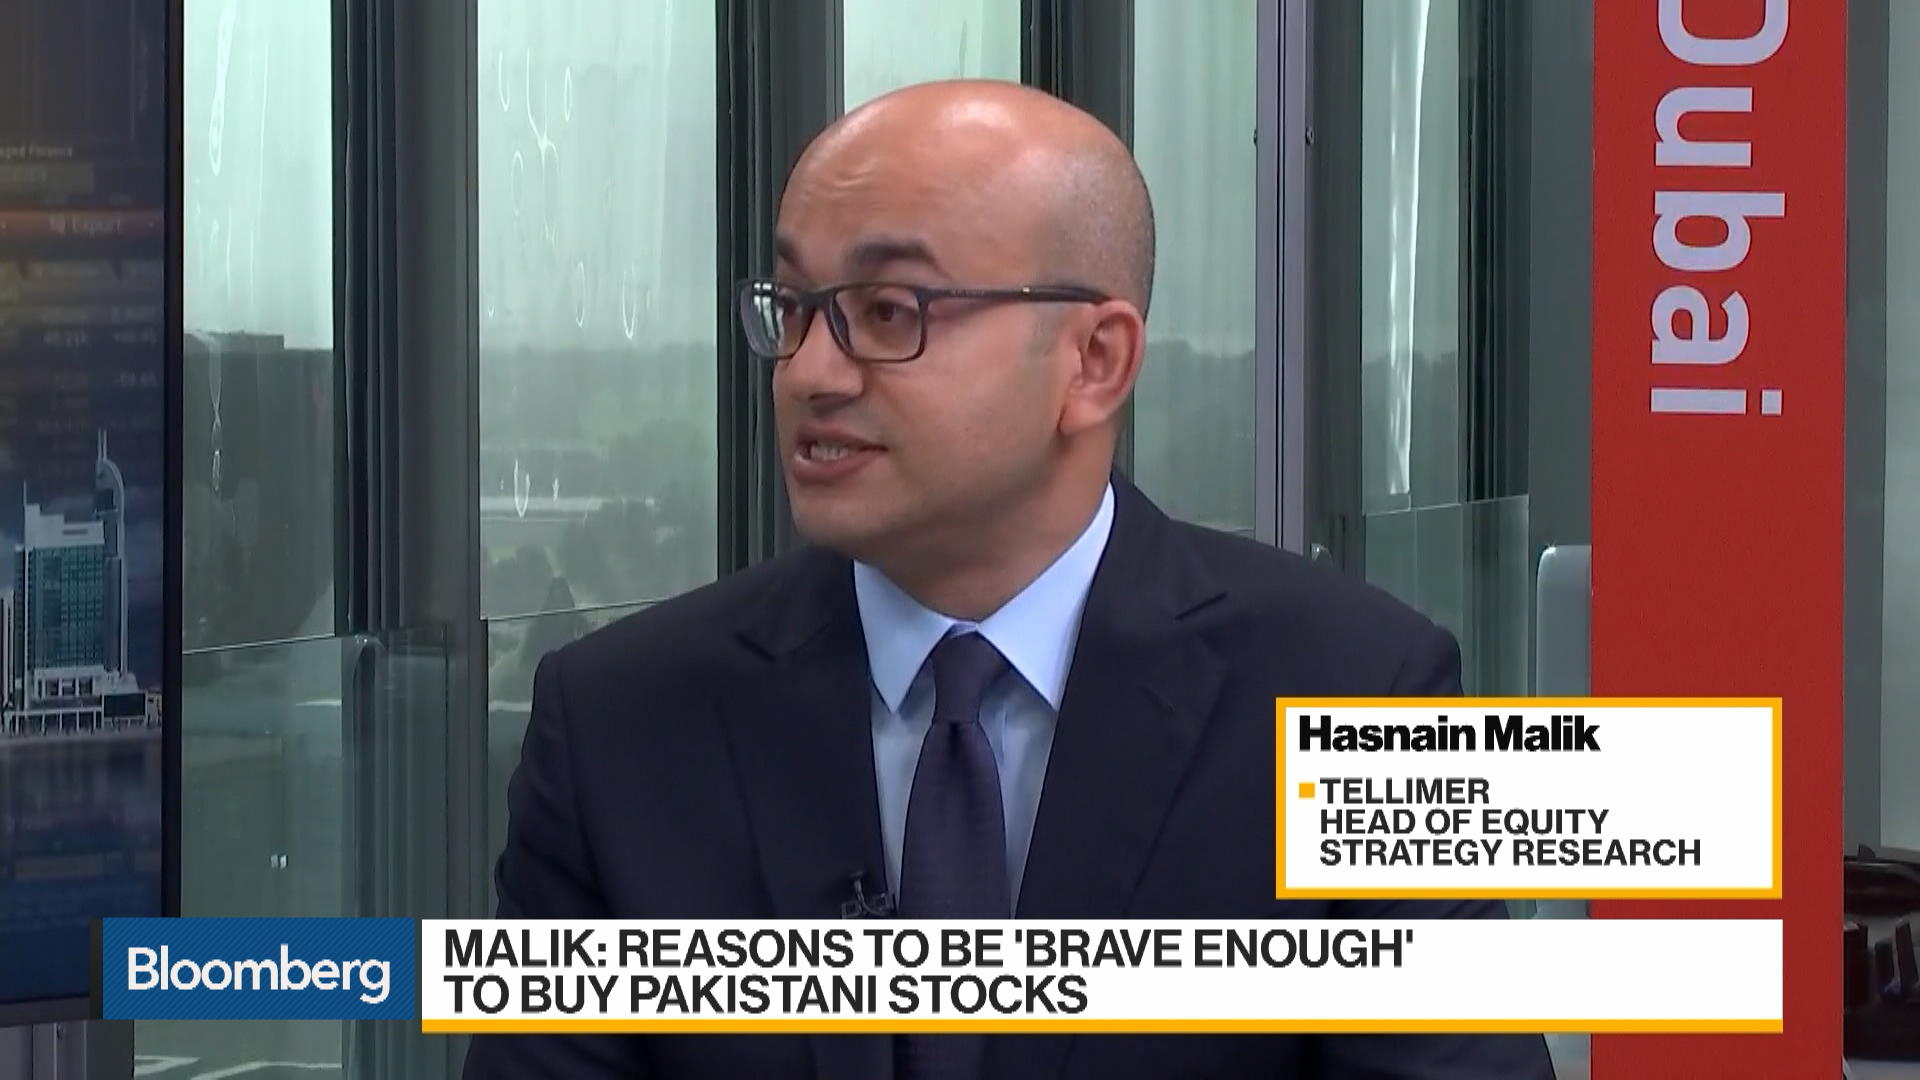 Tellimer Head of Equity Strategy Research Hasnain Malik on Emerging Market Strategy